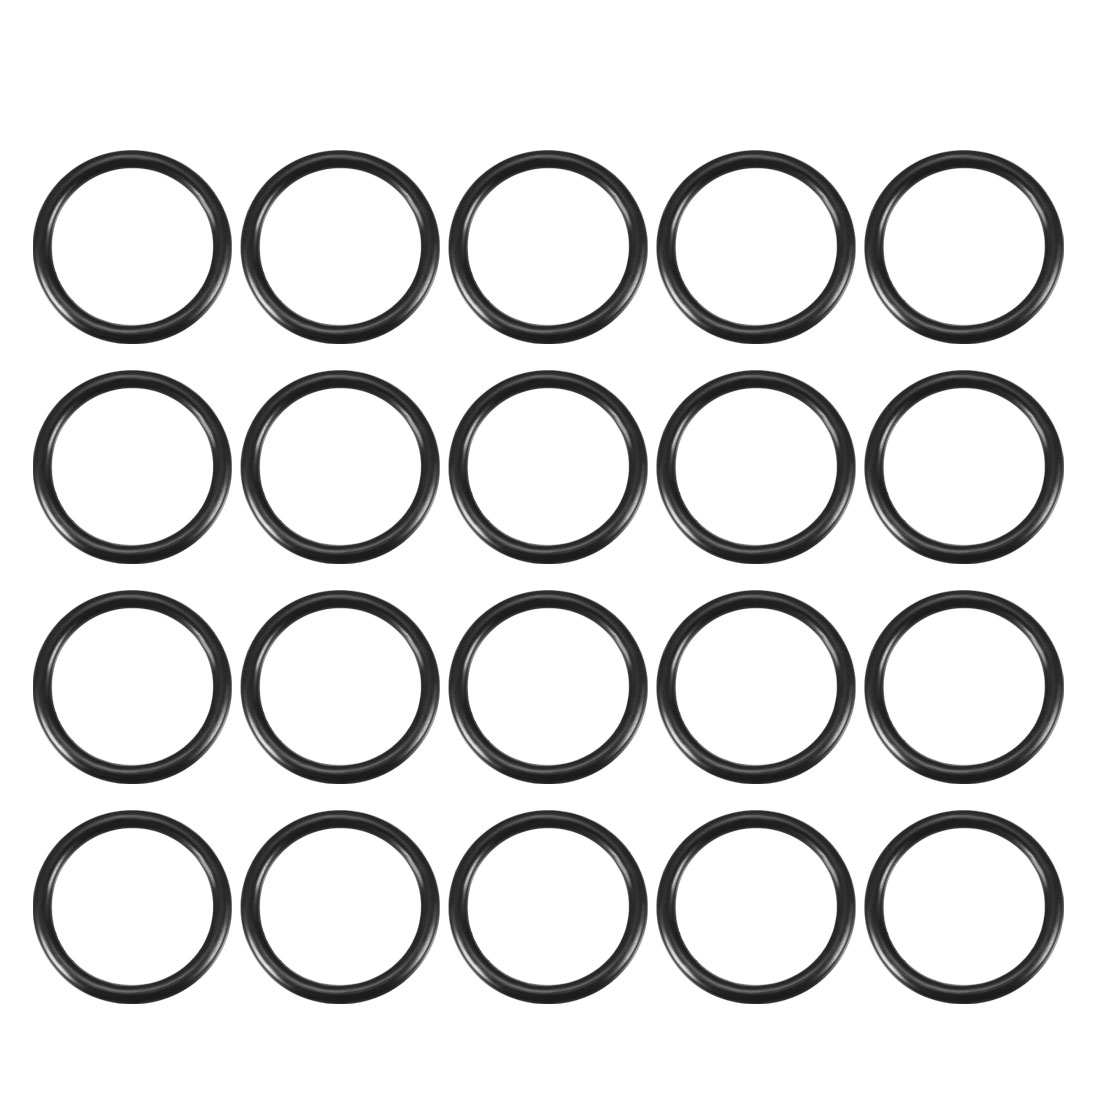 20Pcs 20mm x 16mm x 2mm Black Rubber Oil Sealed Filter O Rings Washers